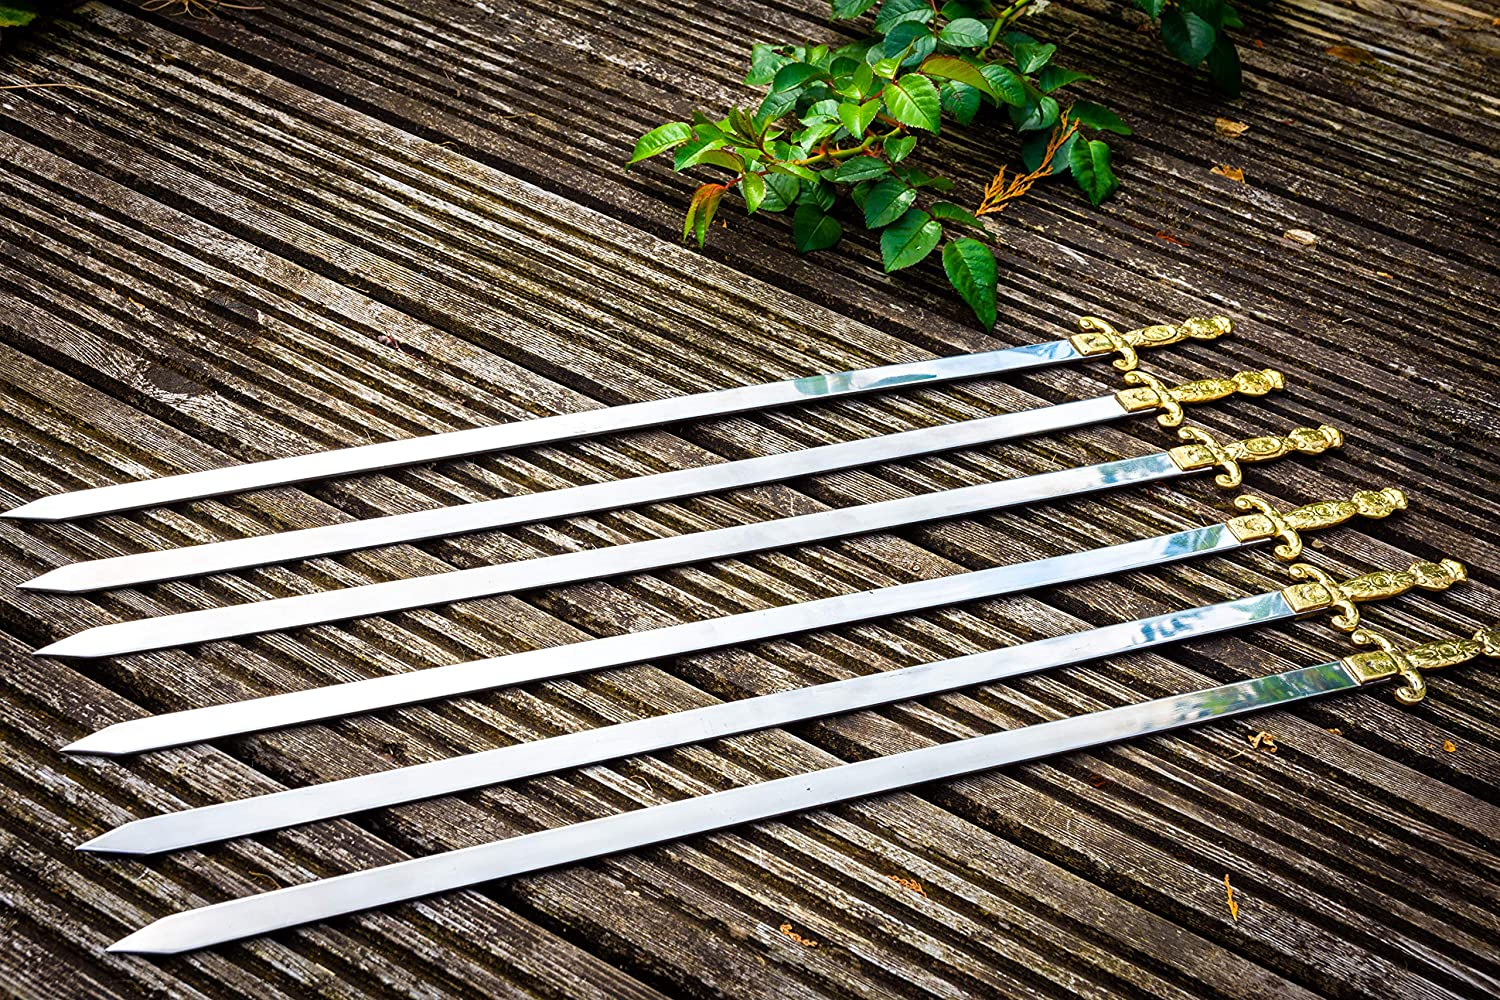 JD Europe Turkish Stainless Steel Flat Kebab Skewers with Brass Handles. Set of 6. Length 22.5'' Width 0.6'' Thickness 0.08''